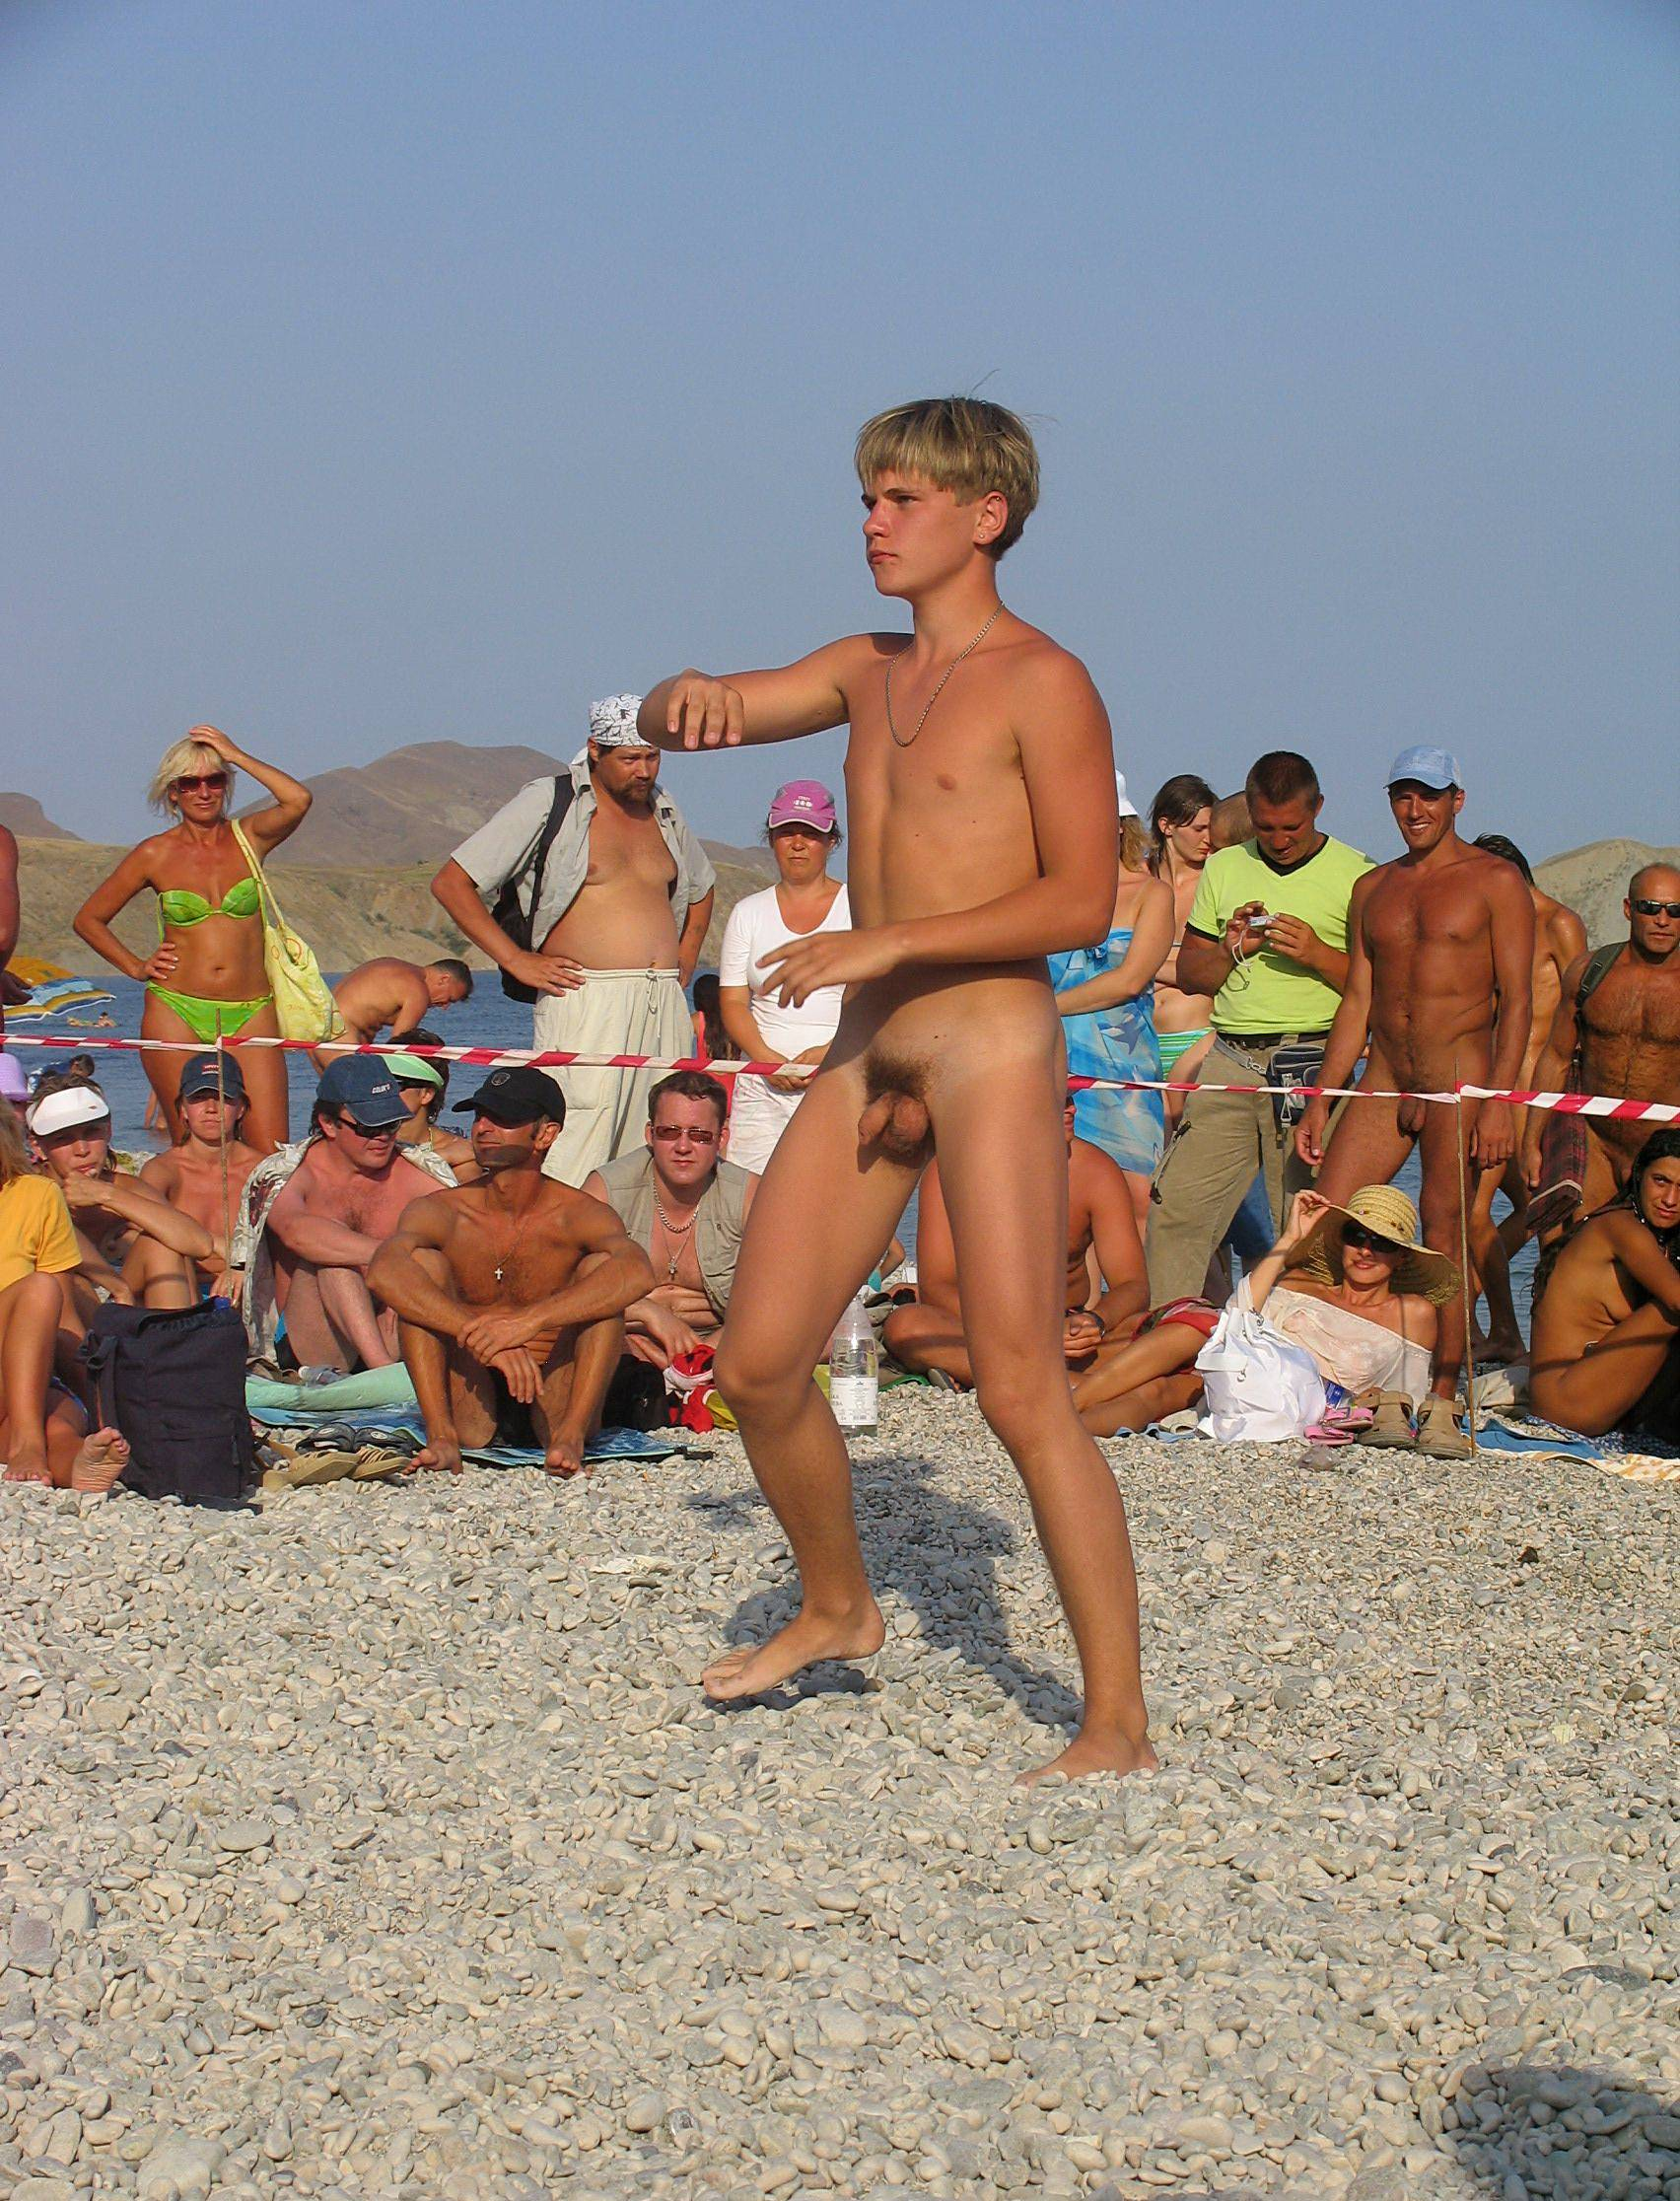 Nudist Gallery Daytime Tribal Dancing - 2